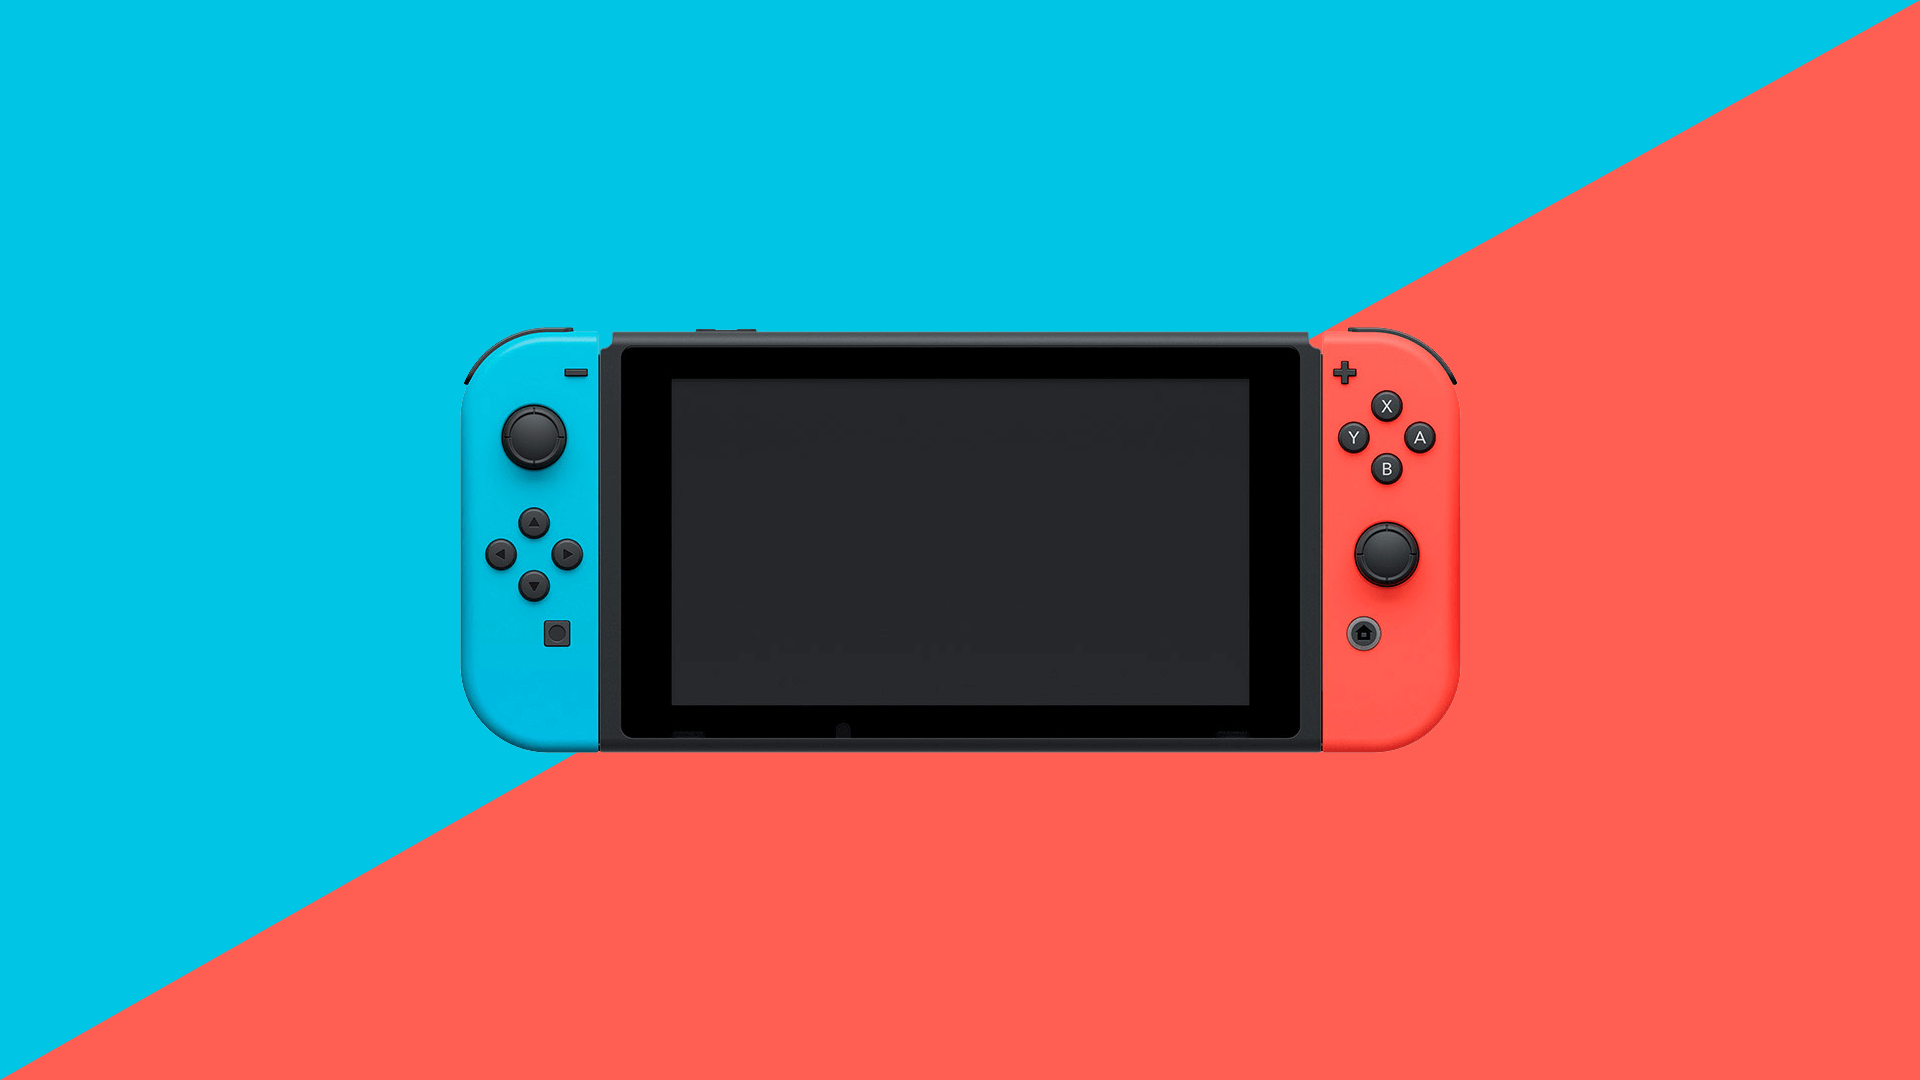 Nintendo announces the Nintendo Switch Lite